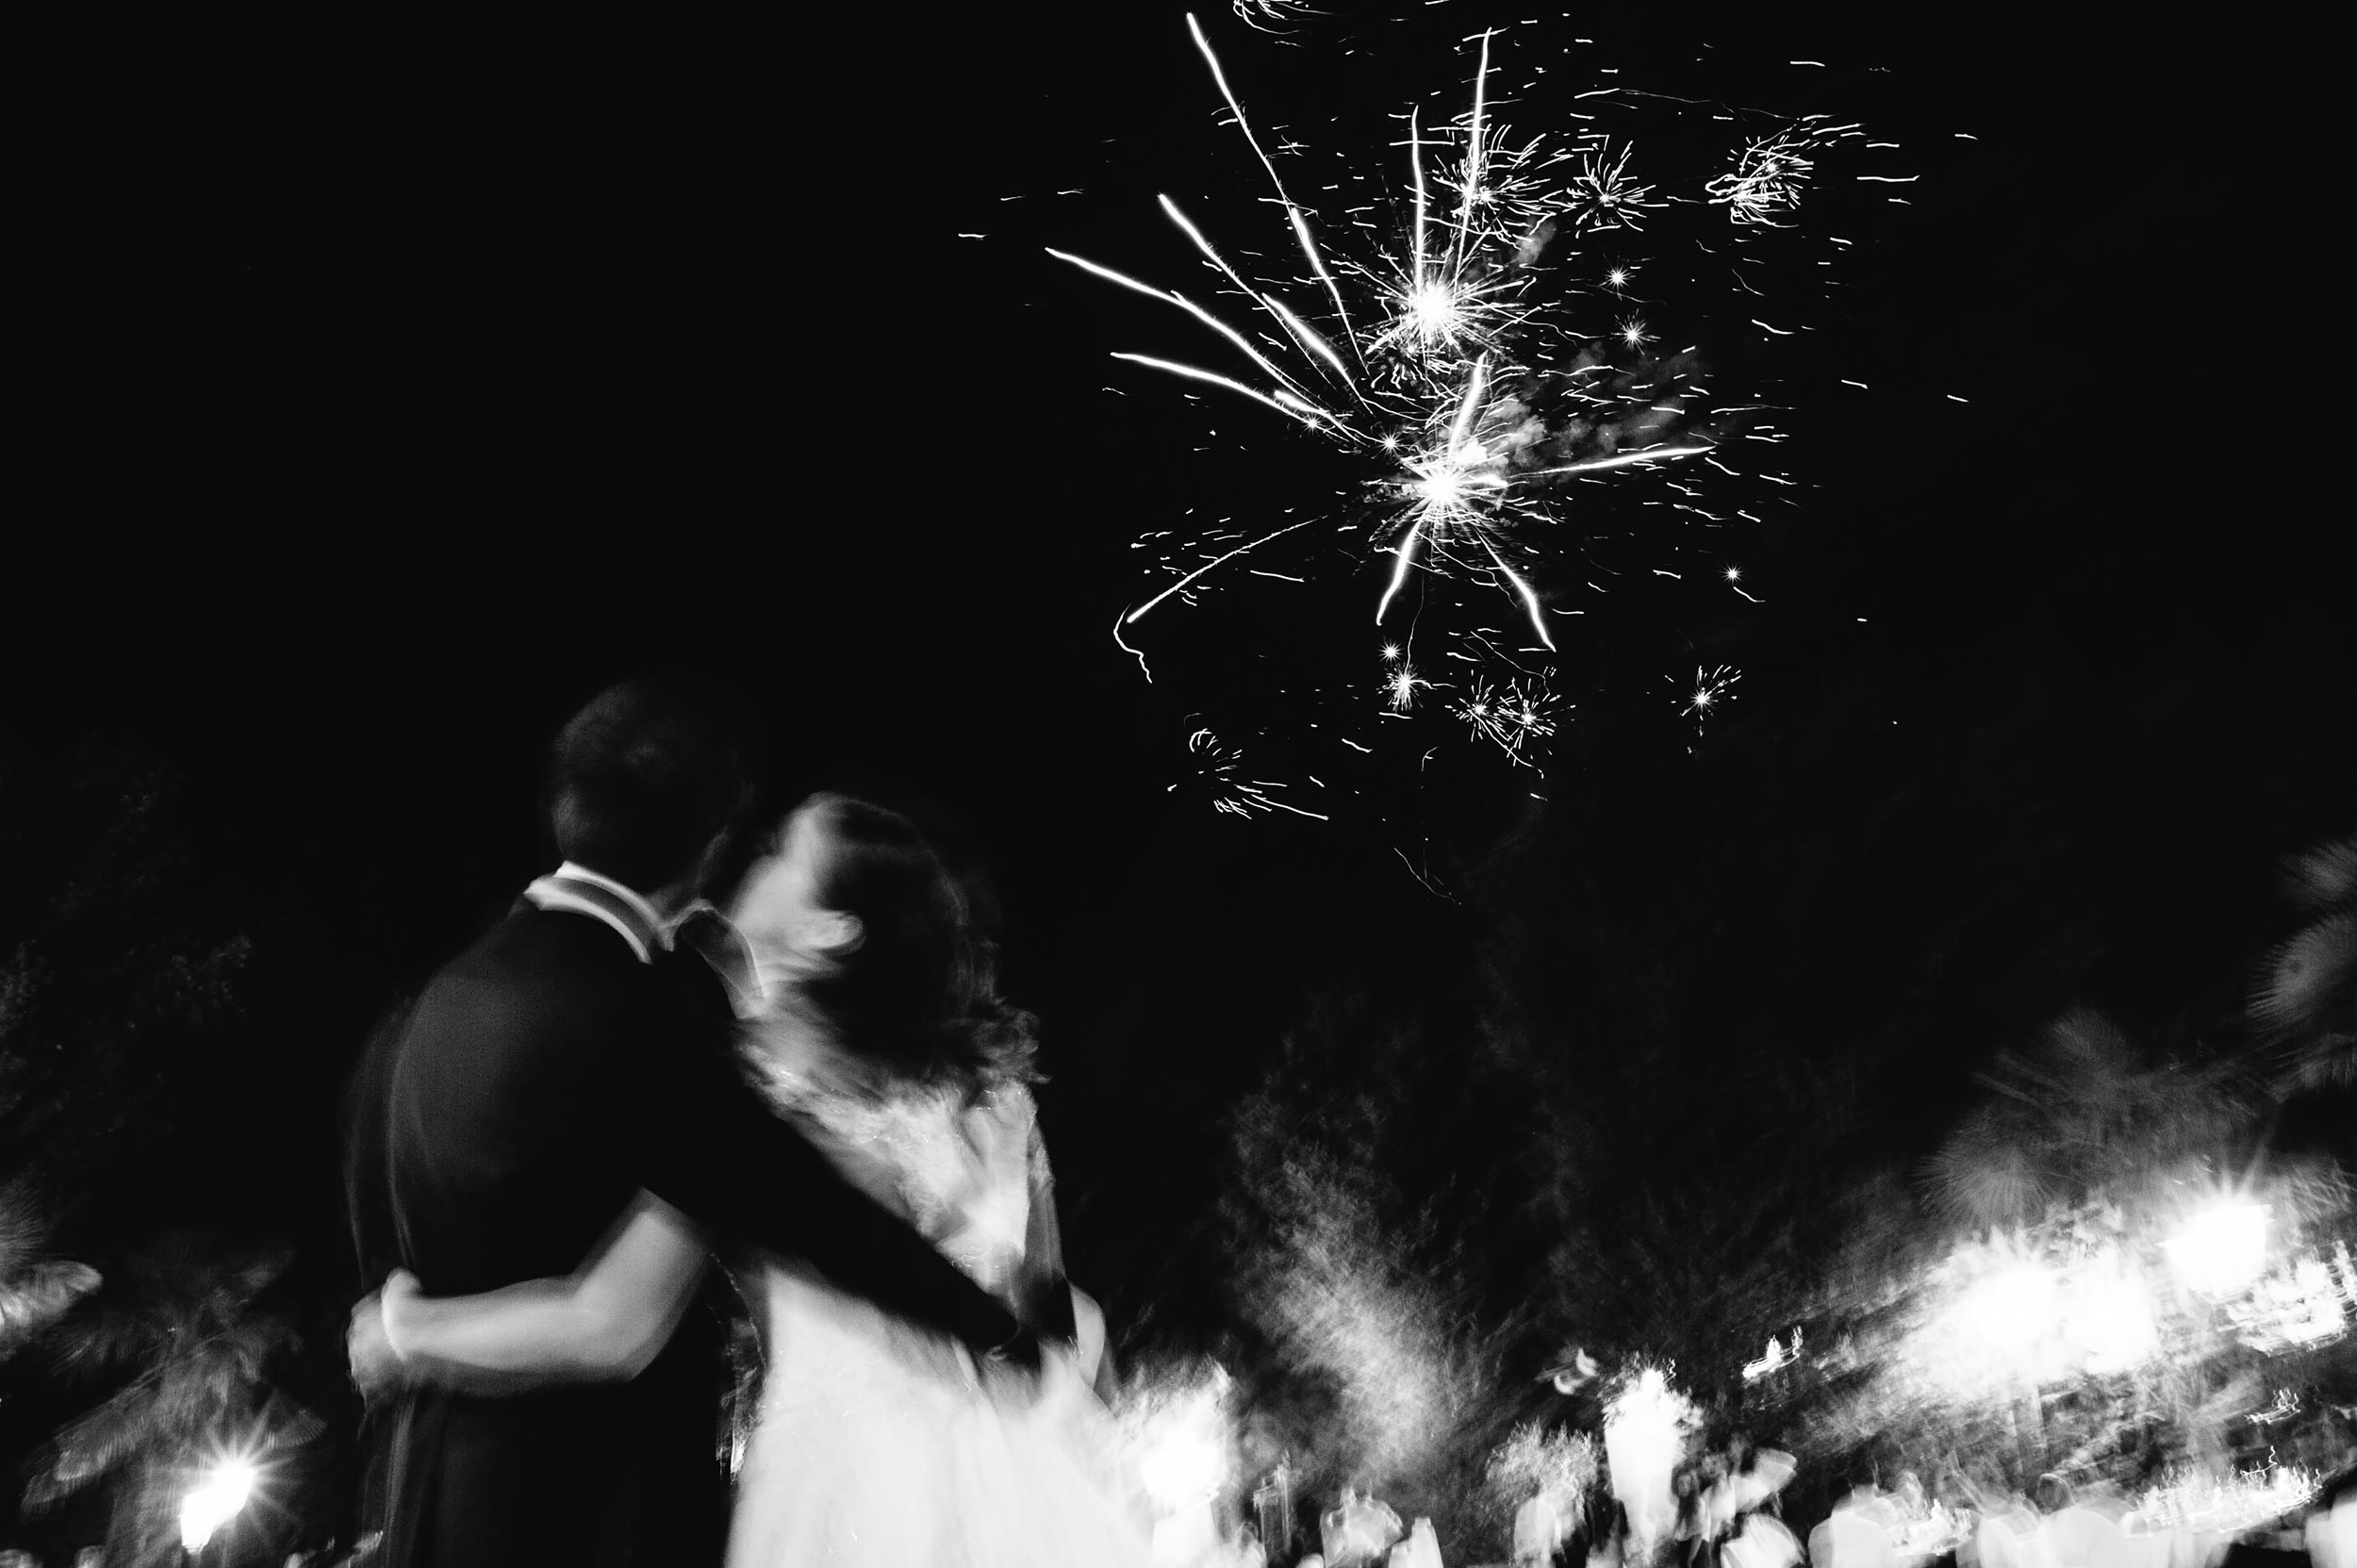 the-bride-kisses-the-groom-under-fireworks-black-and-white-wedding-photography.jpg